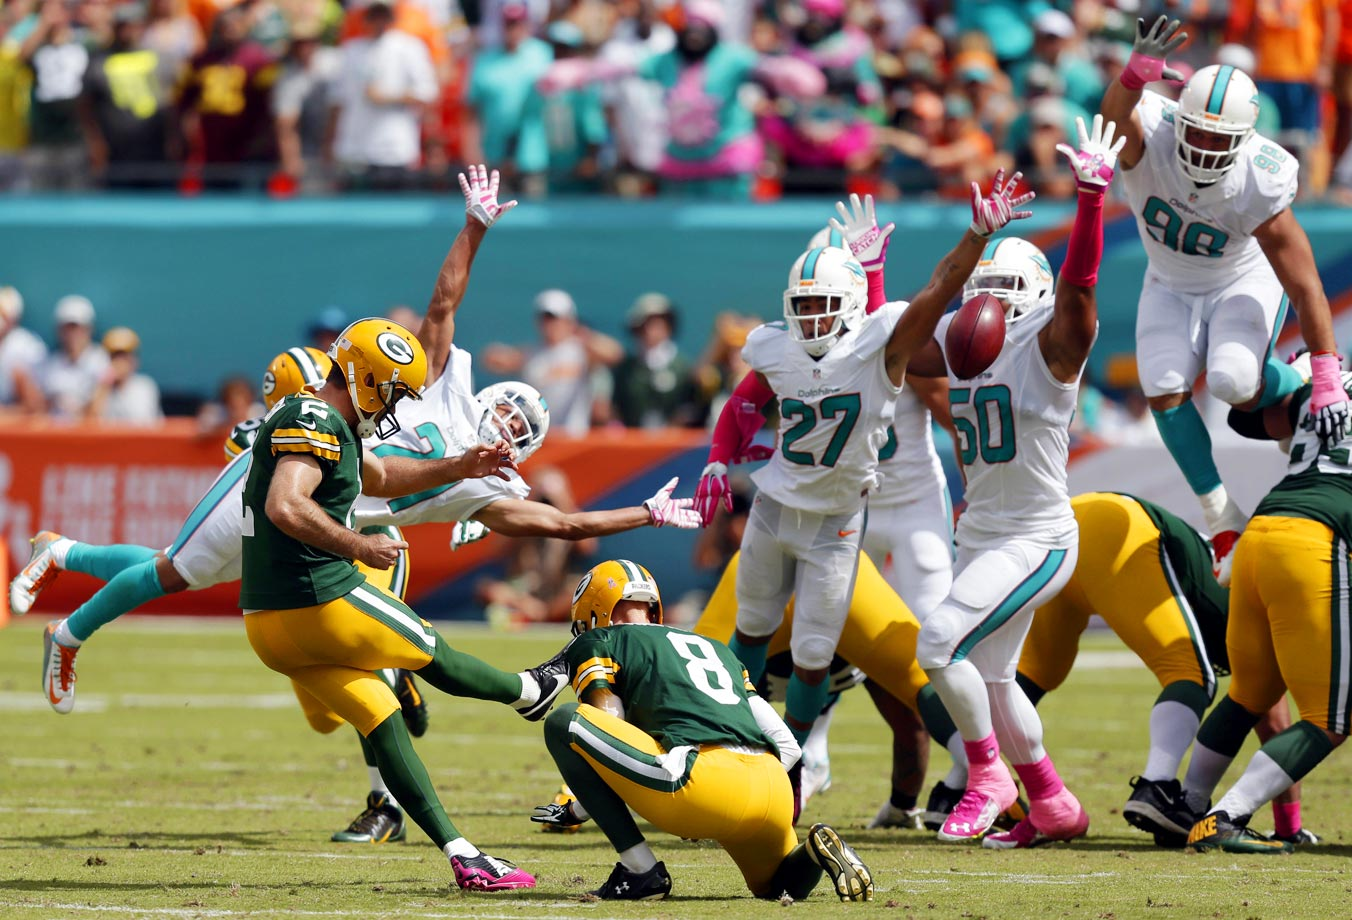 Green Bay Packers kicker Mason Crosby boots a field goal during the first half against the Miami Dolphins.